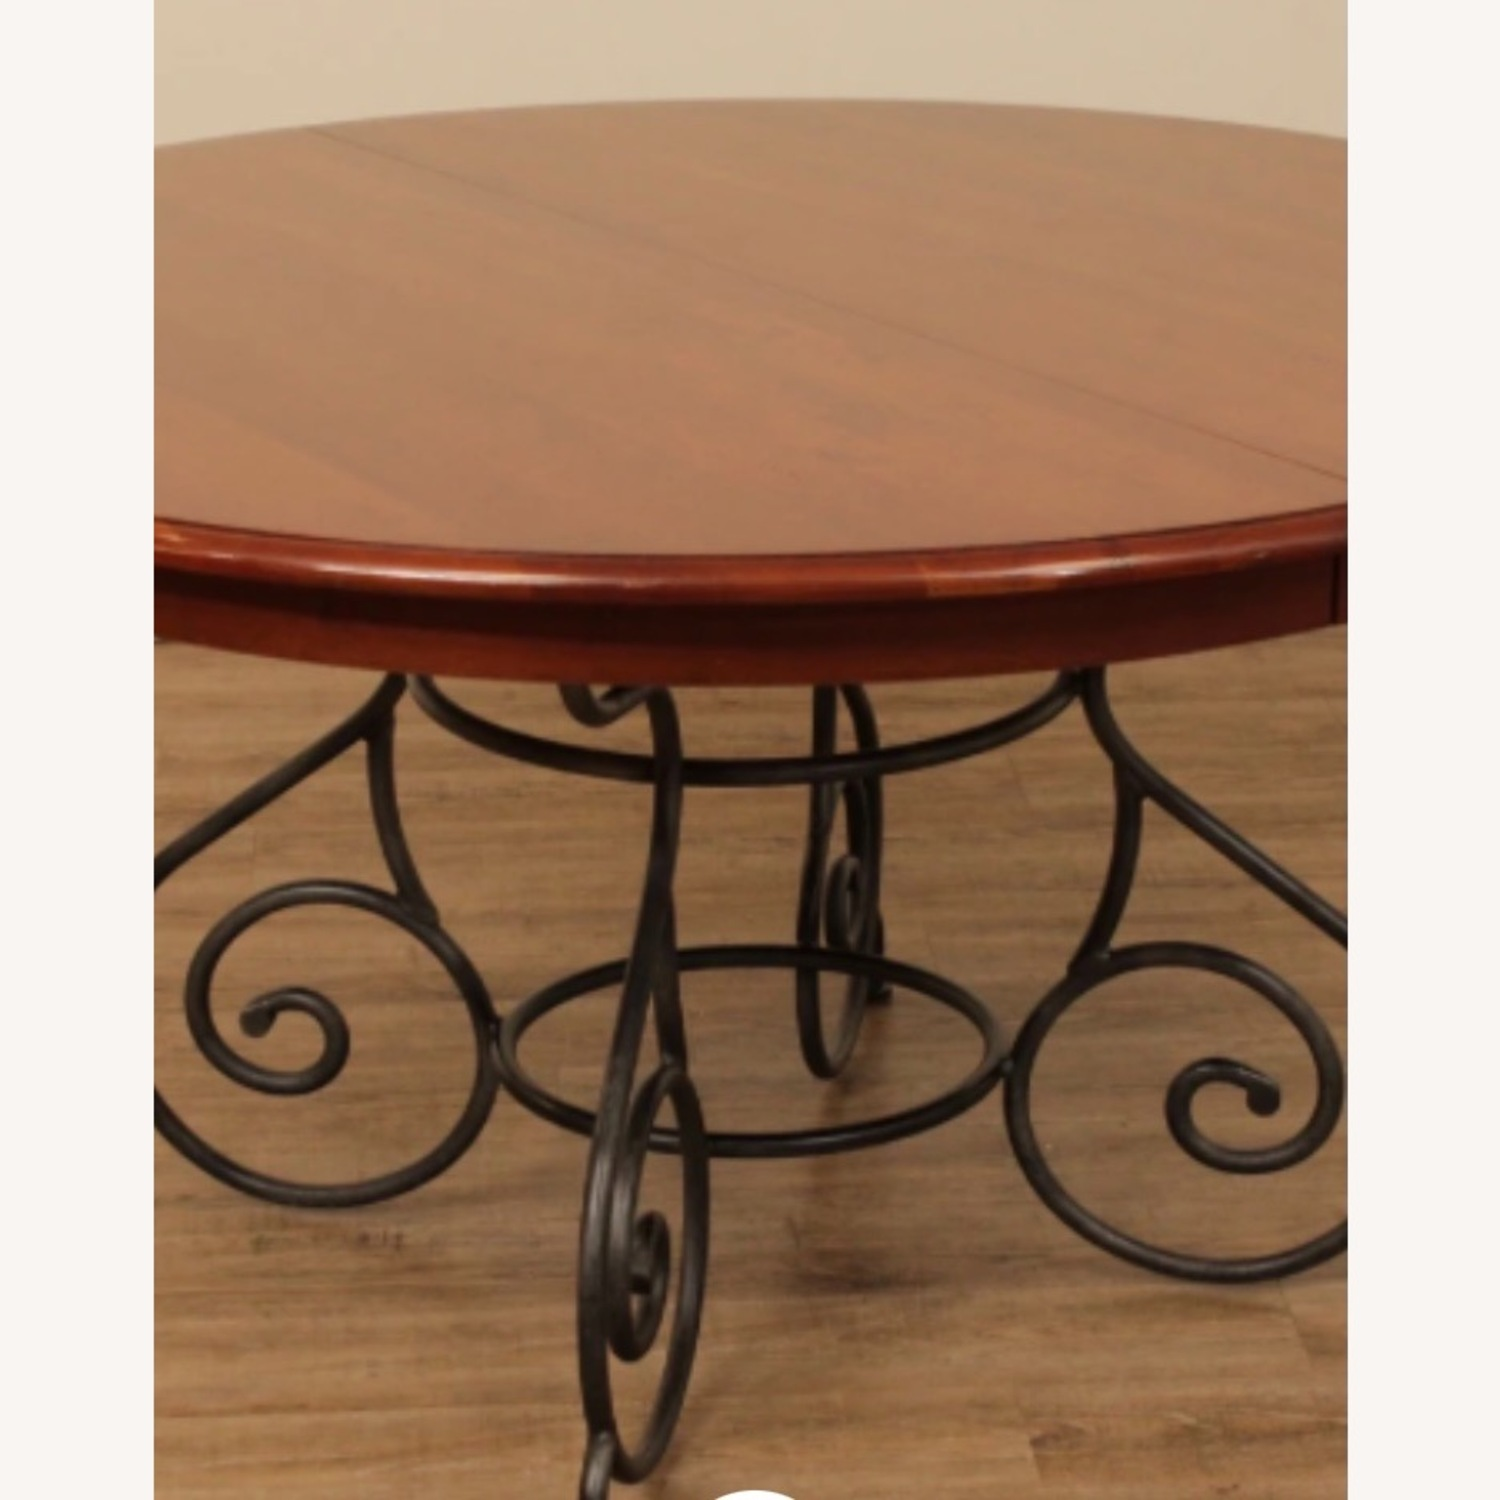 Ethan Allen Maisen Dining Table - image-4